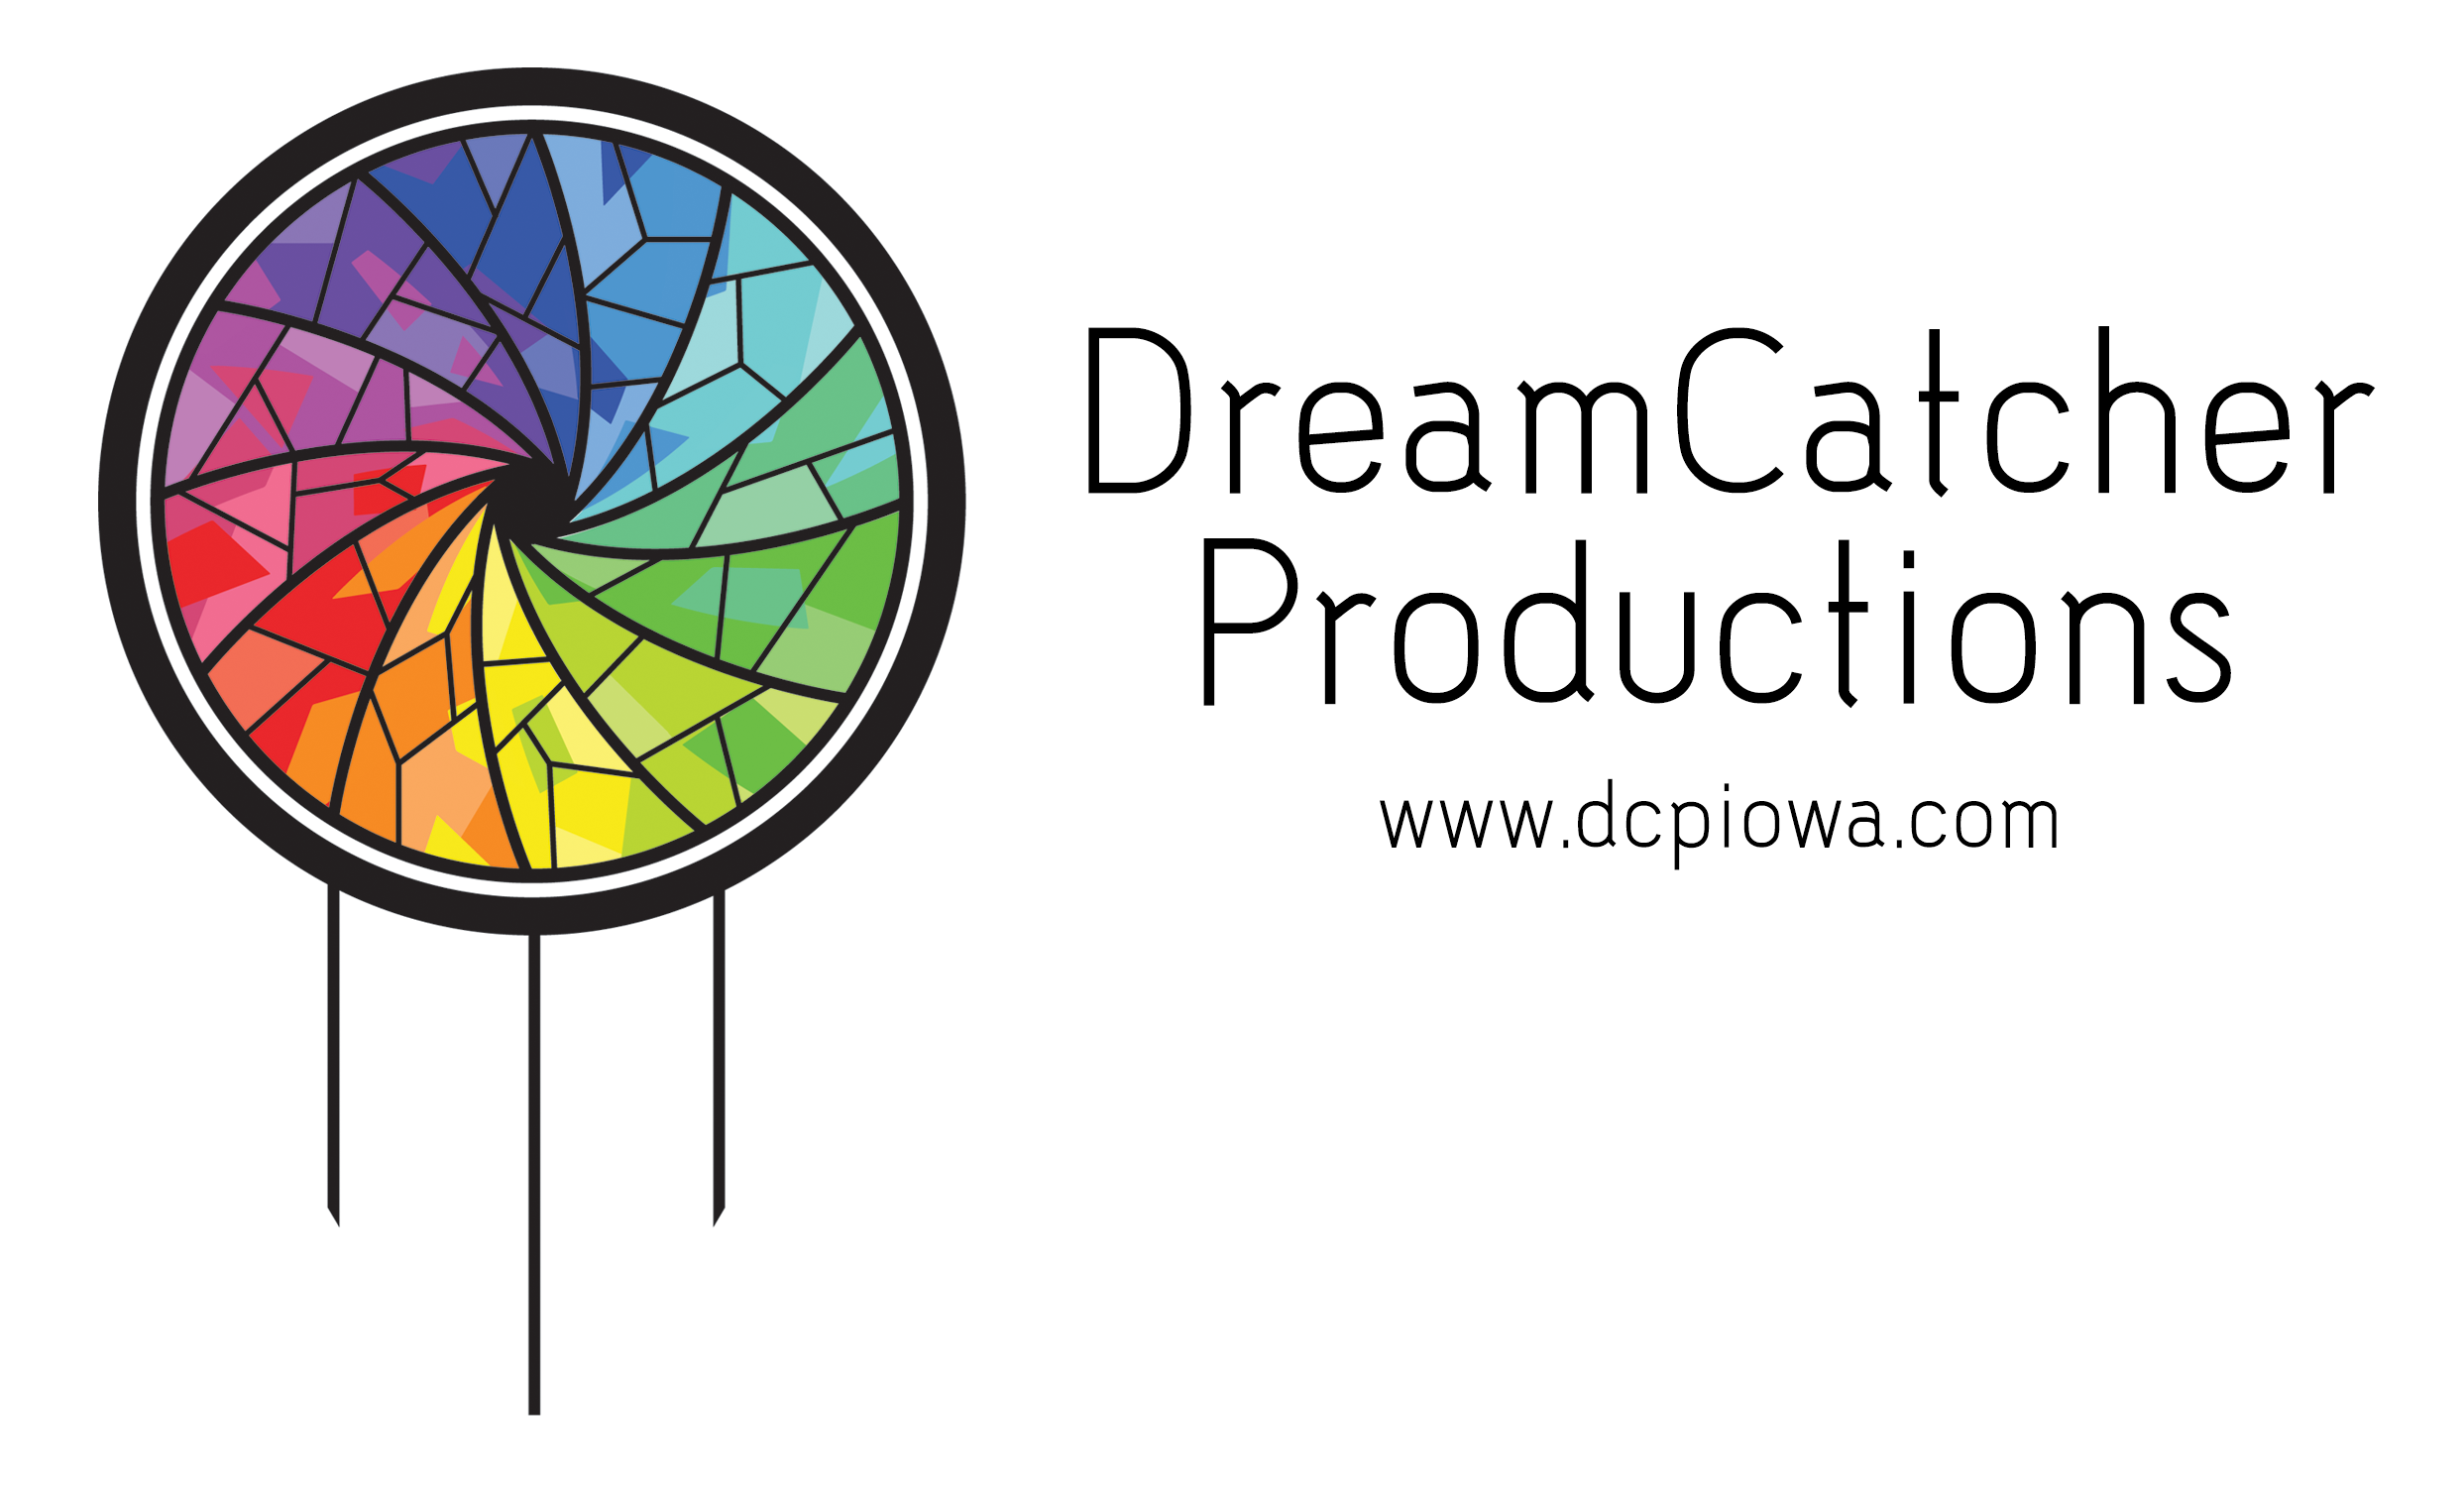 DreamCatcher Productions